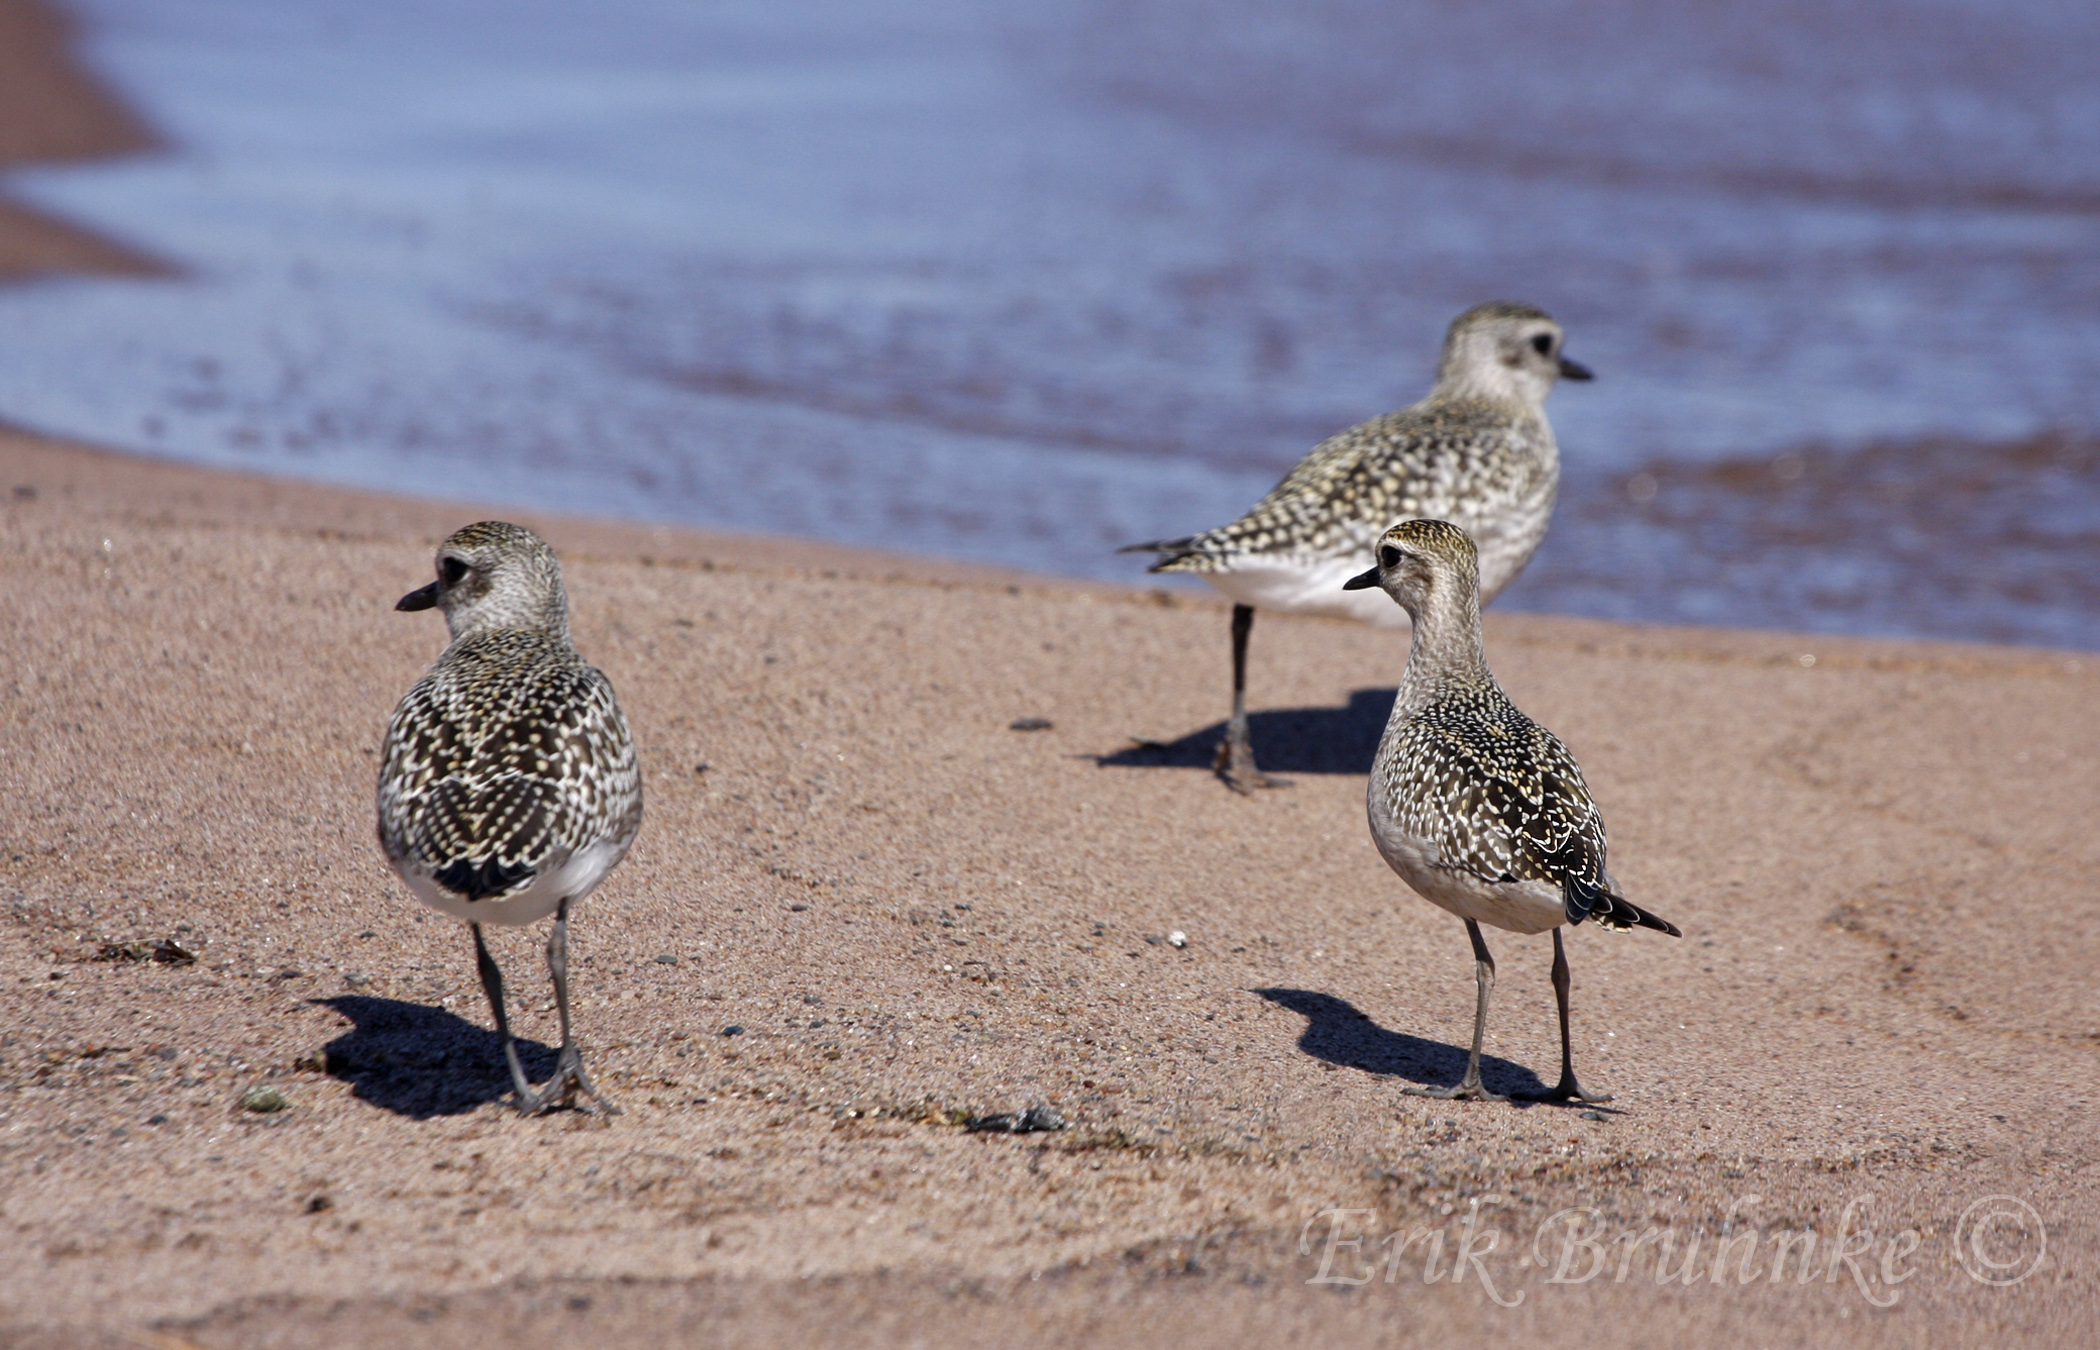 American Golden Plover (bottom right) with Black-bellied Plovers